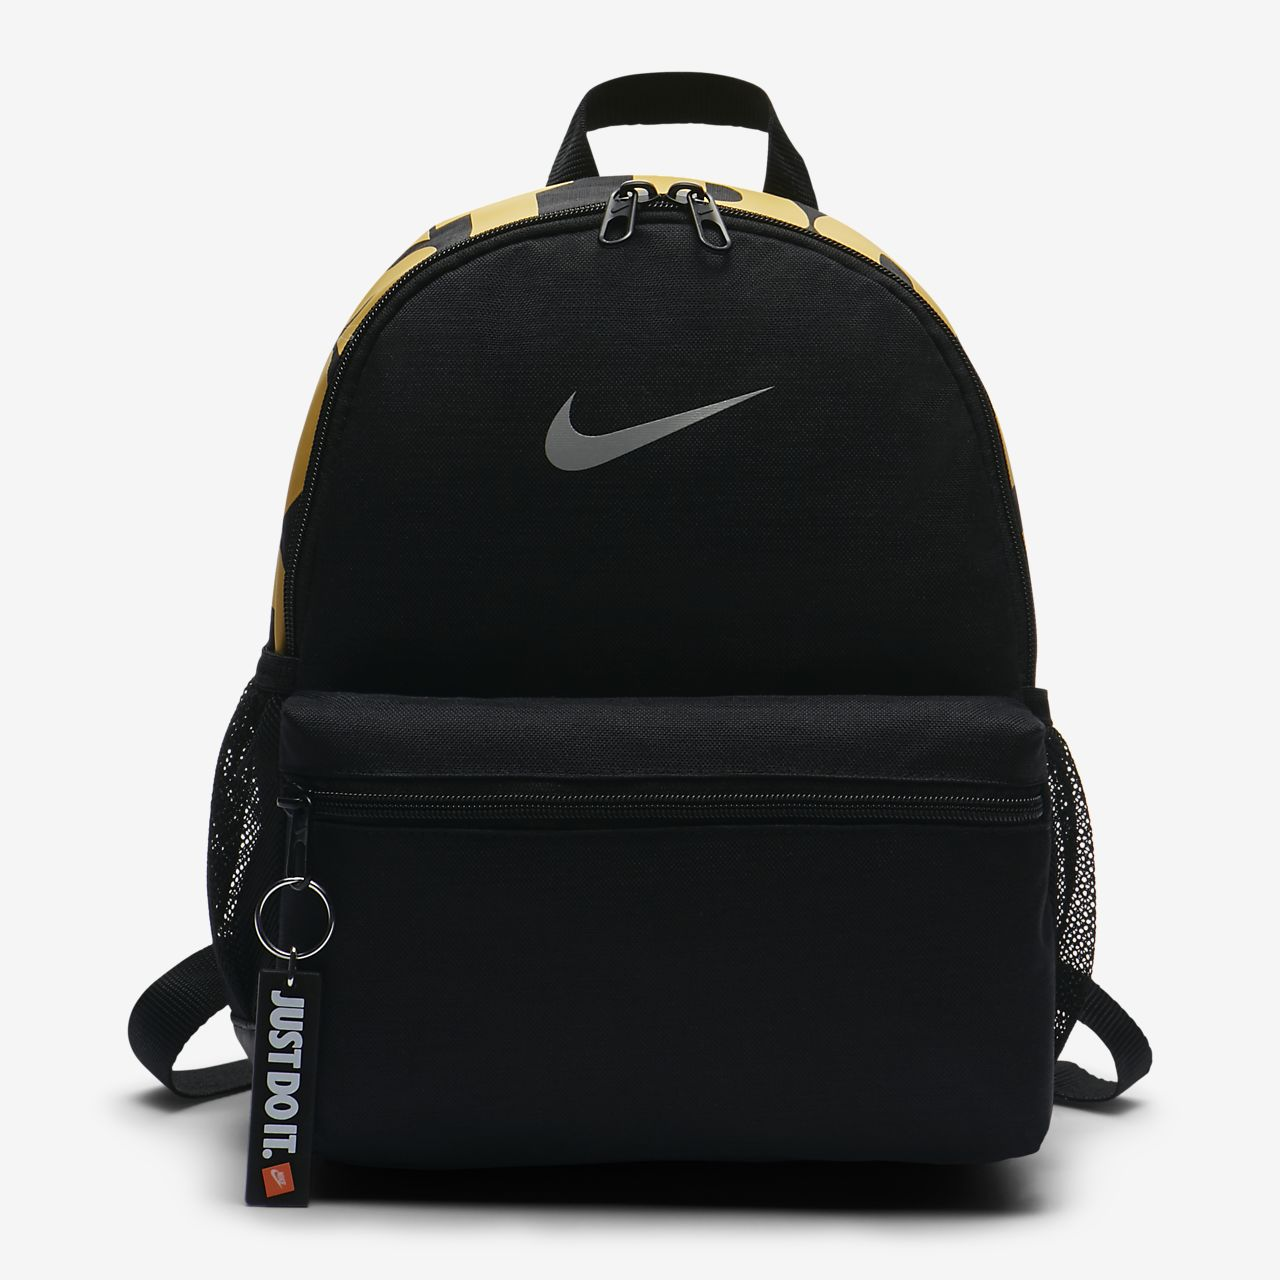 Nike Brasilia Just Do It Kids Backpack Mini Nike Com Nz